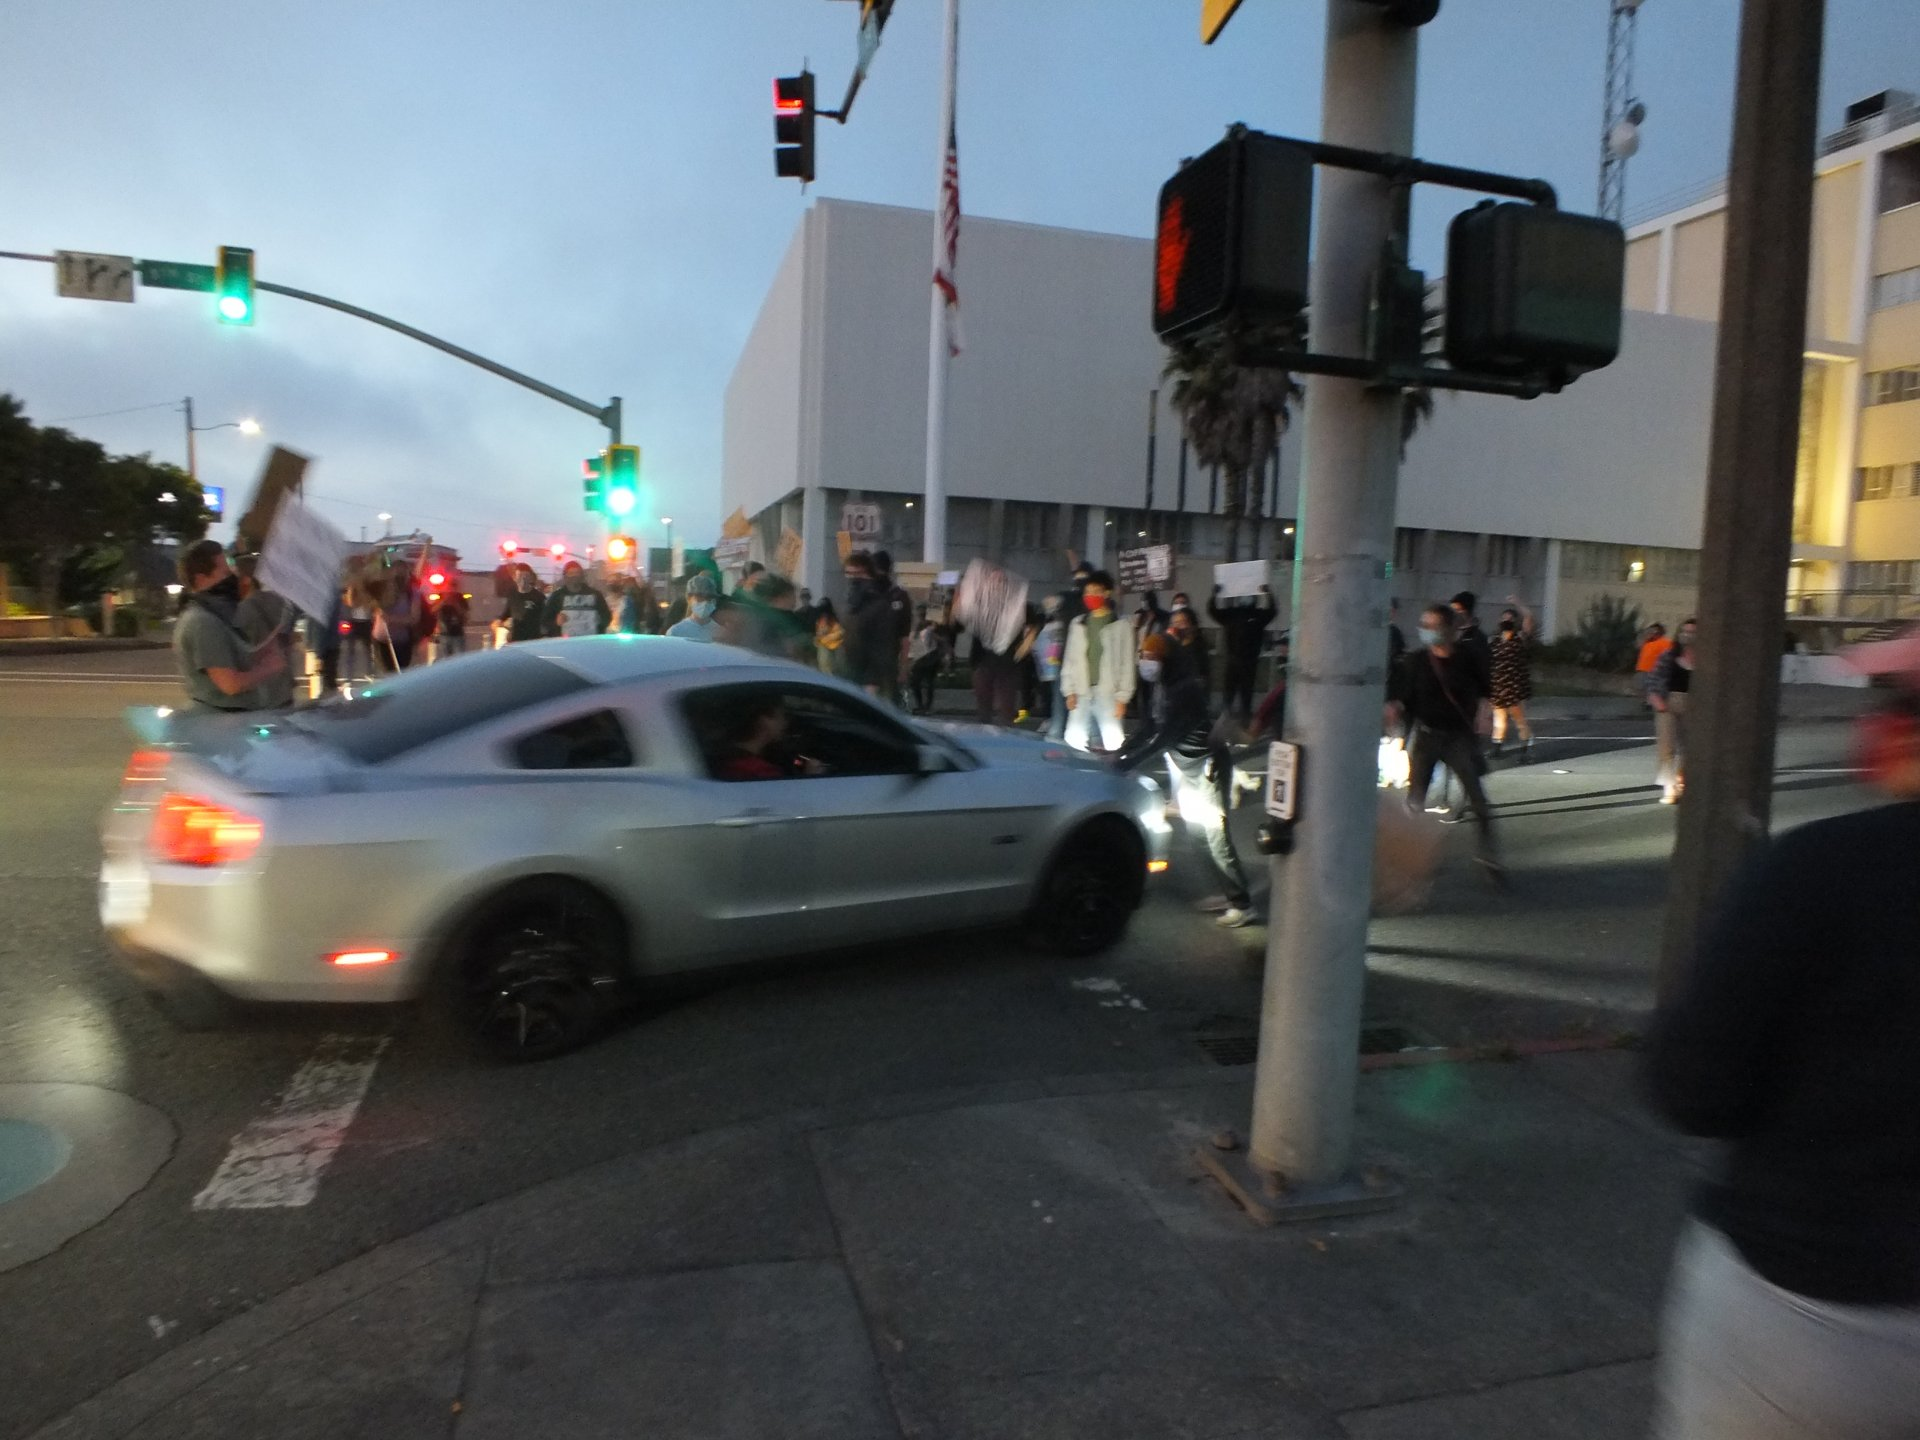 A car begins to drive through the blockade of protestors near the Humboldt County Court on Sept. 24. While this instance would leave protestors relatively uninjured, a later collision would leave one protestor injured and taken to the hospital.   Photo by Carlos Holguin